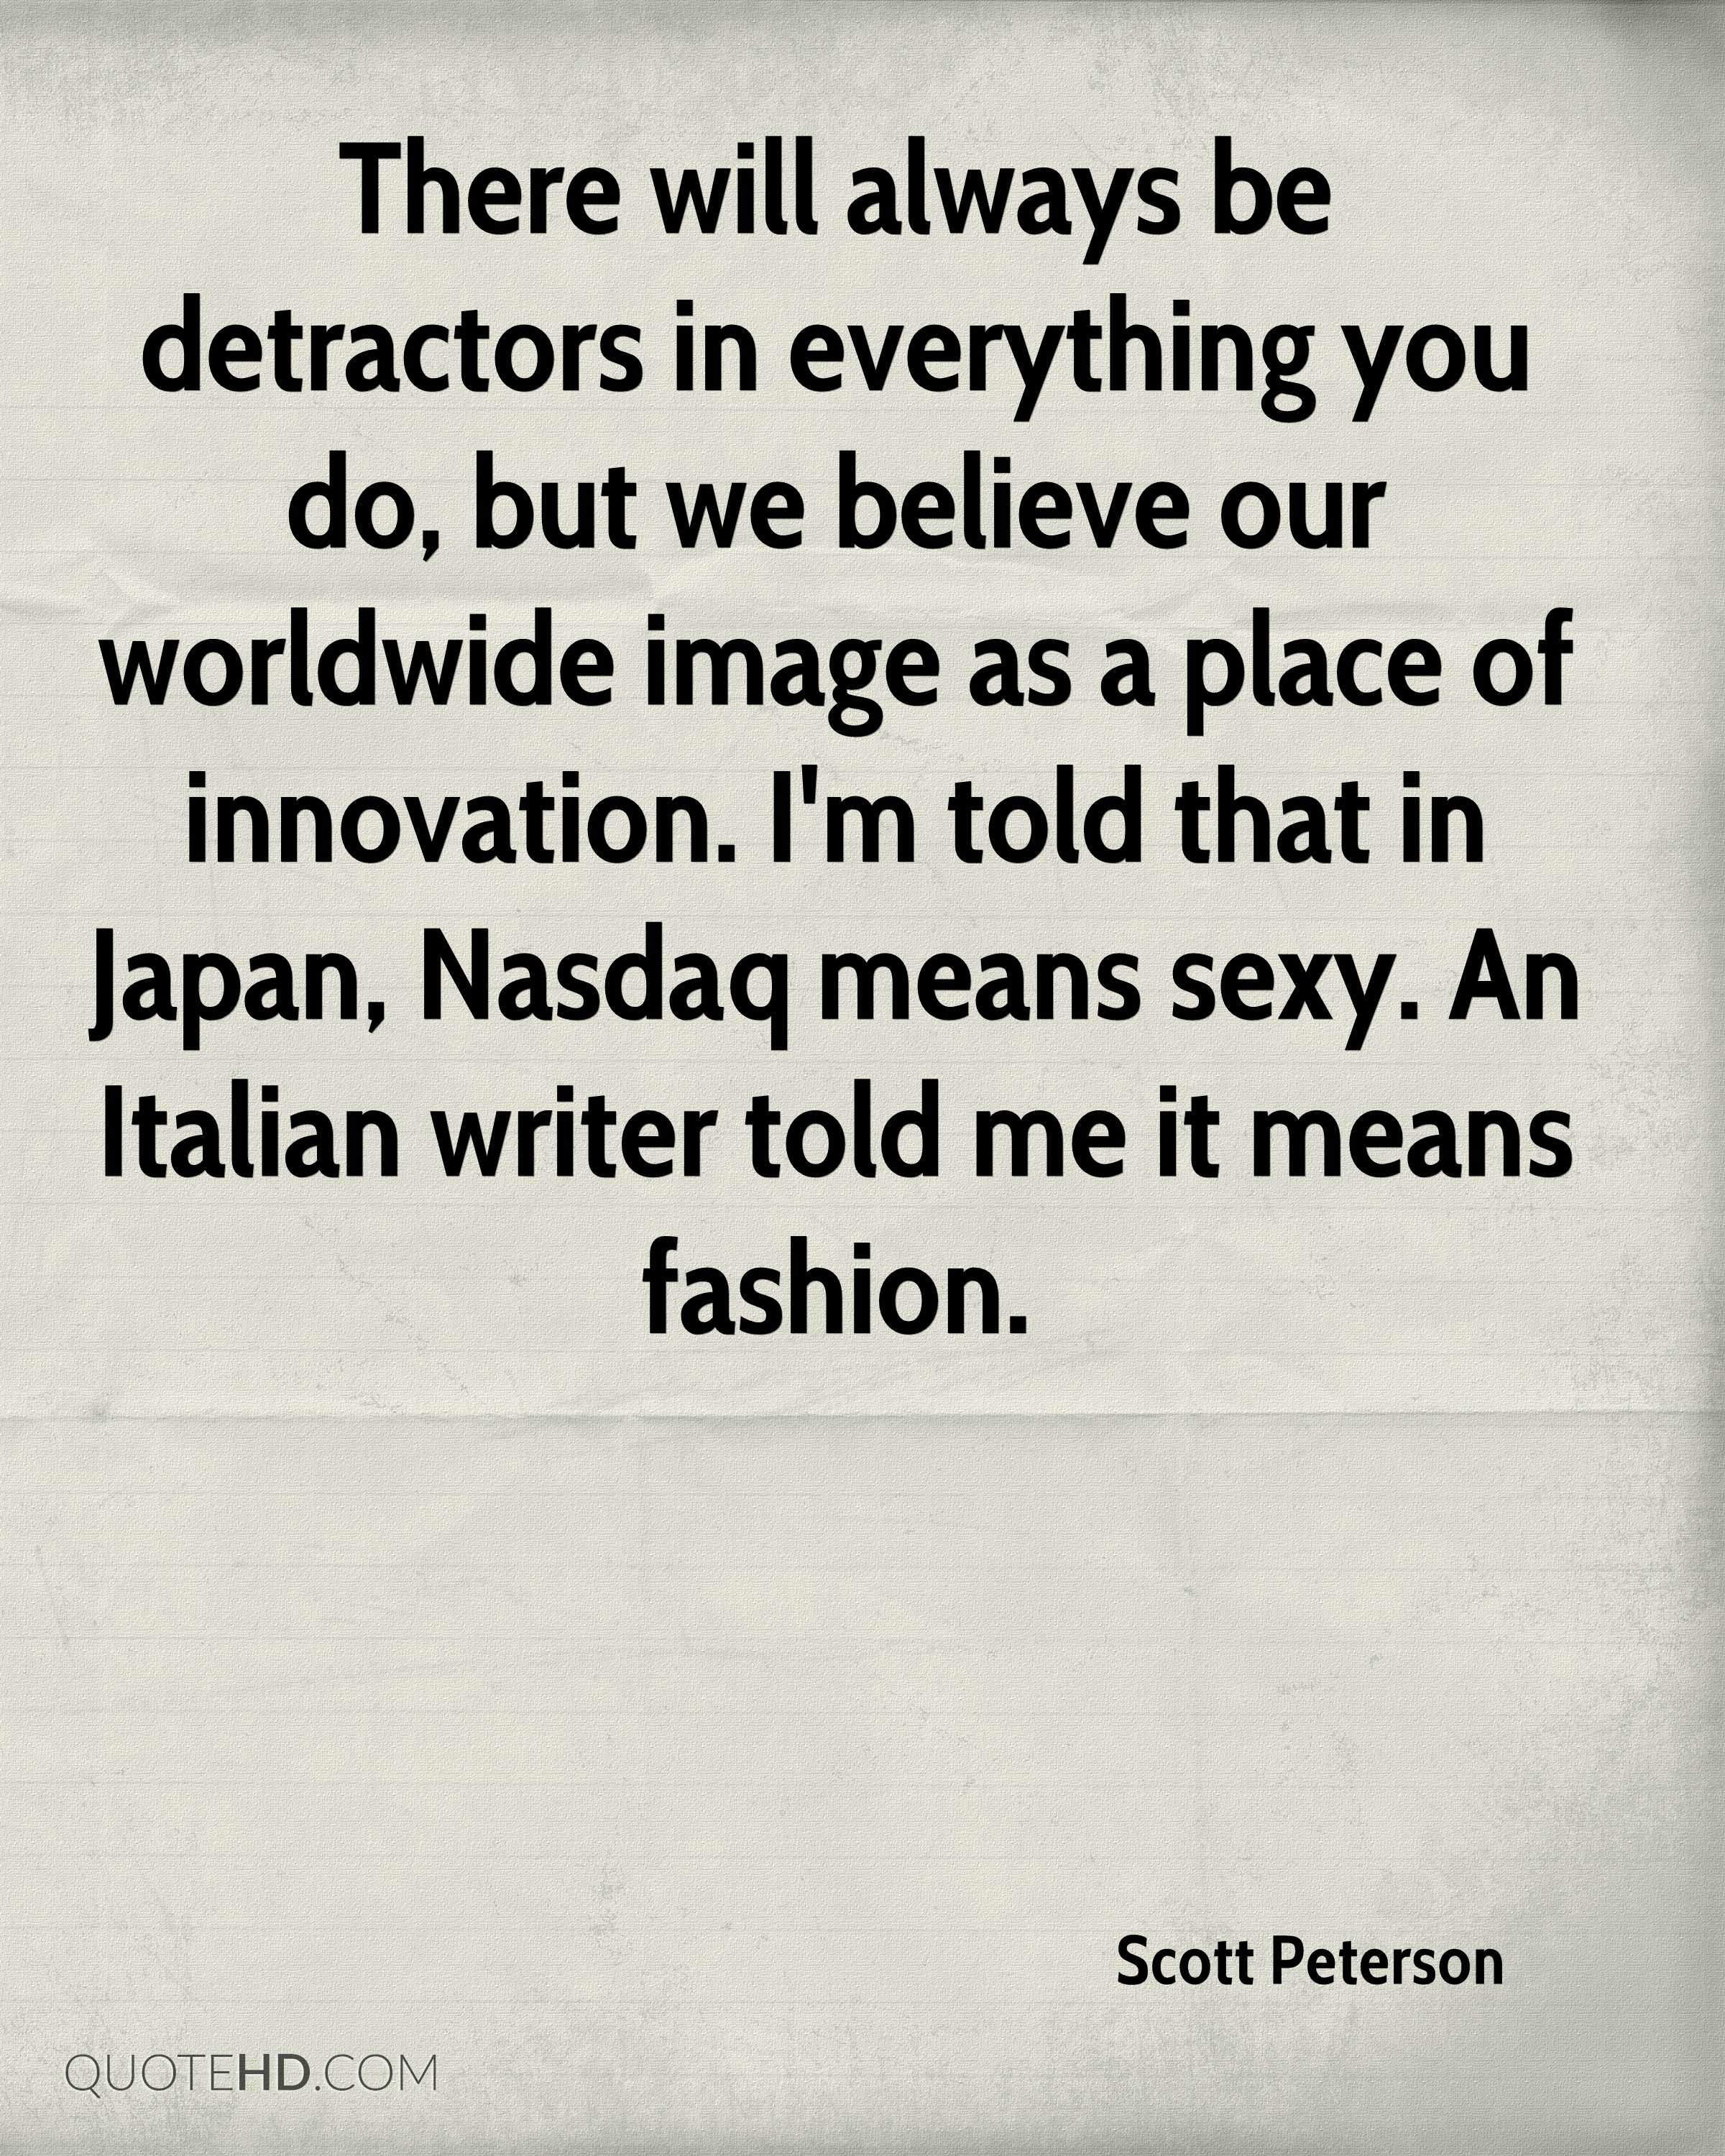 There will always be detractors in everything you do, but we believe our worldwide image as a place of innovation. I'm told that in Japan, Nasdaq means sexy. An Italian writer told me it means fashion.